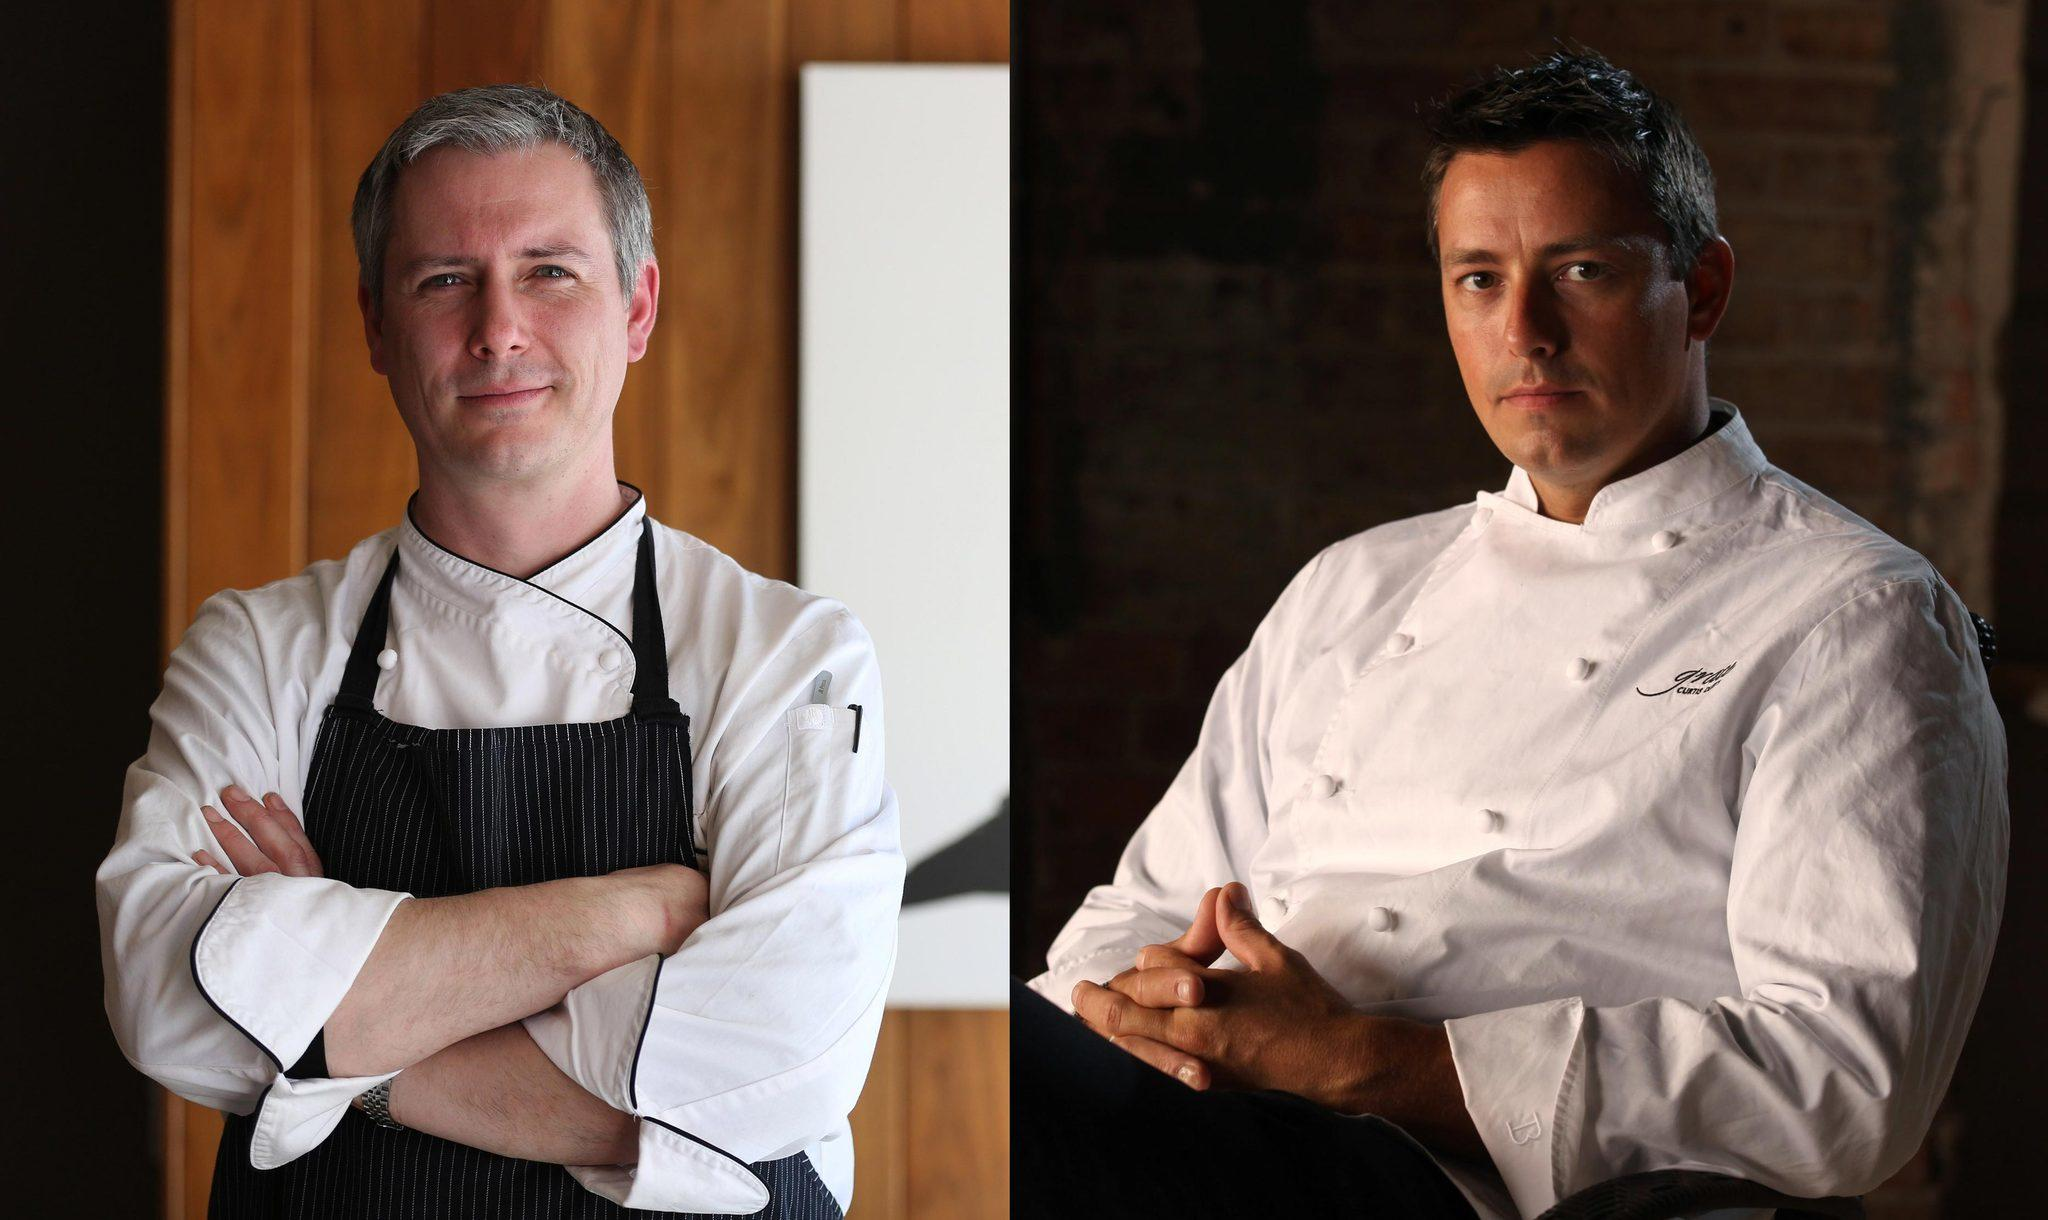 Sepia's Andrew Zimmerman (left) and Grace's Curtis Duffy are among Chicago finalists for the 2014 James Beard Foundation Awards.